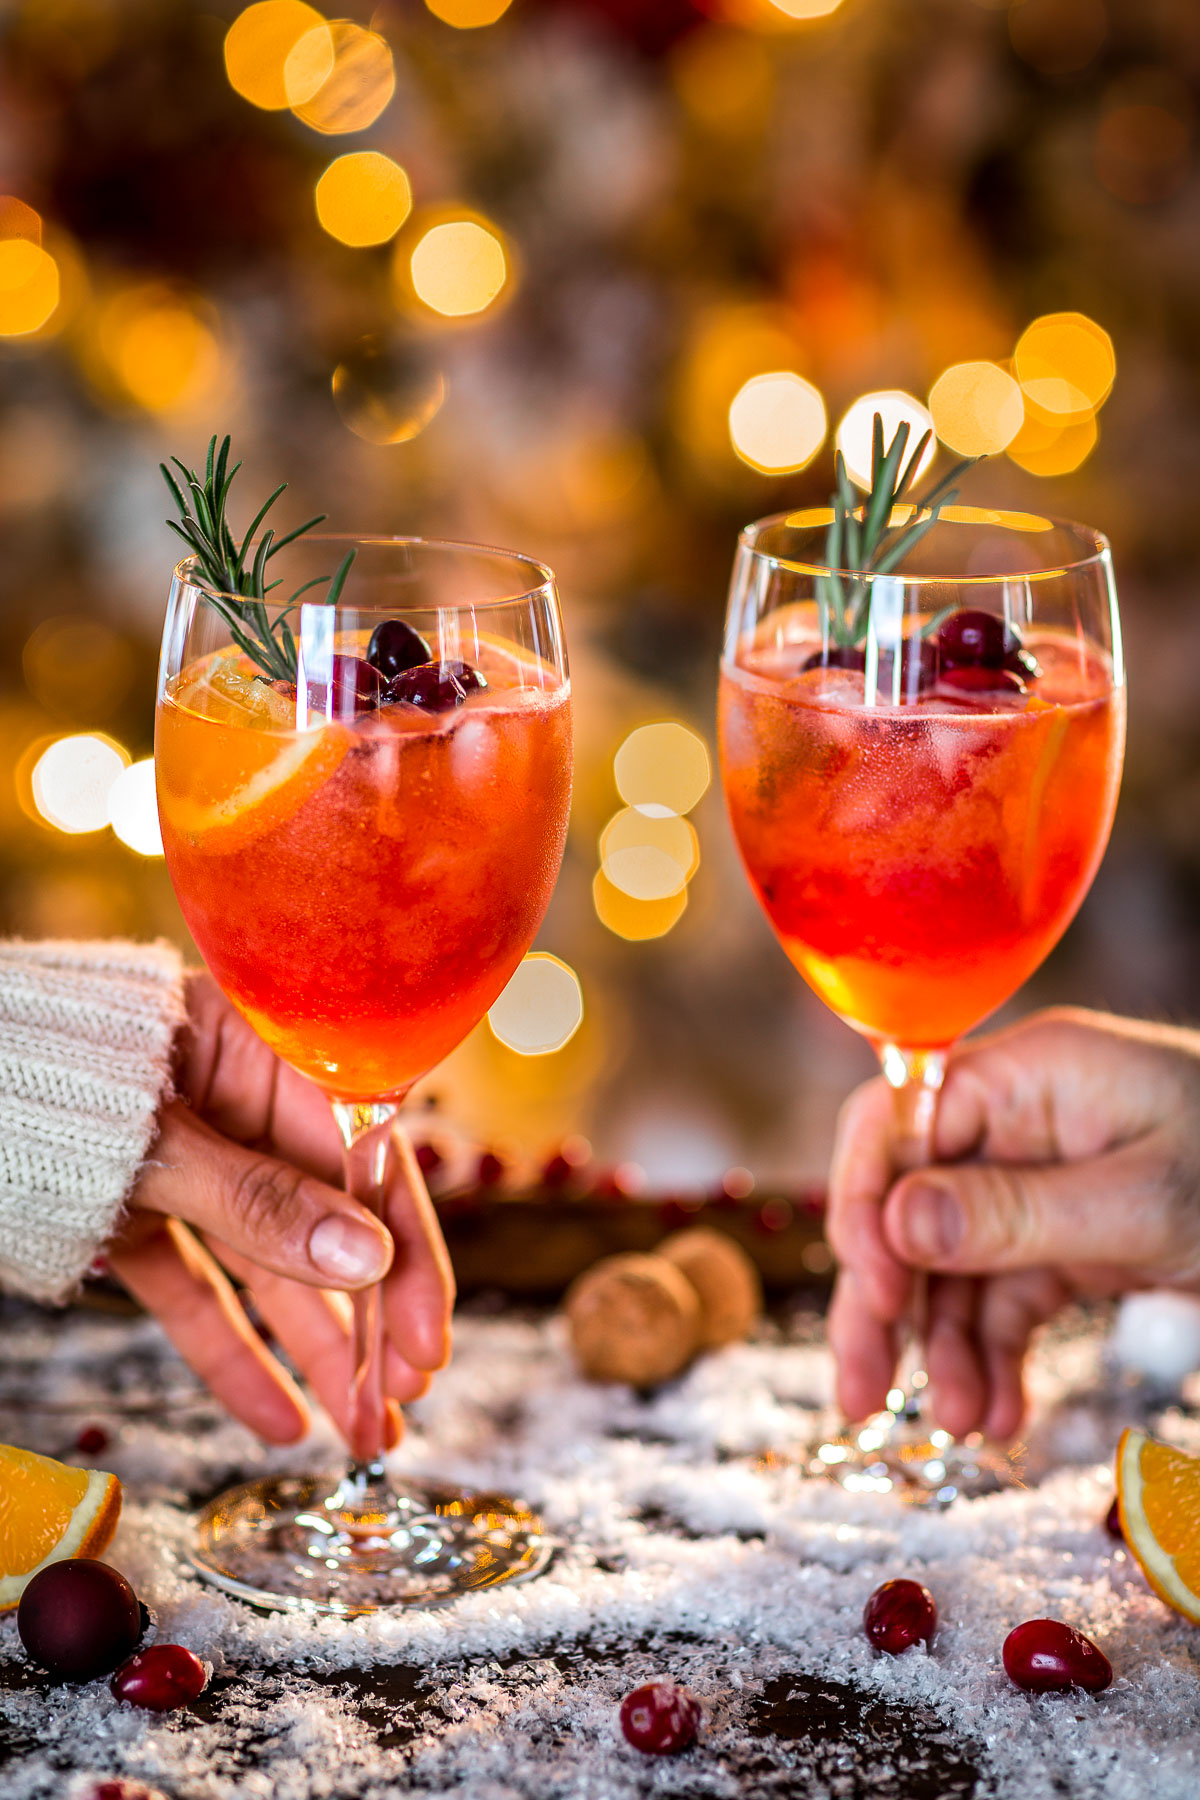 WINTER HOLIDAY CHRISTMAS SPRITZER recipe with cranberry orange juice Ricetta SPRITZ di NATALE con succo di arance e cranberry mirtilli rossi per APERITIVO #CHRISTMAS